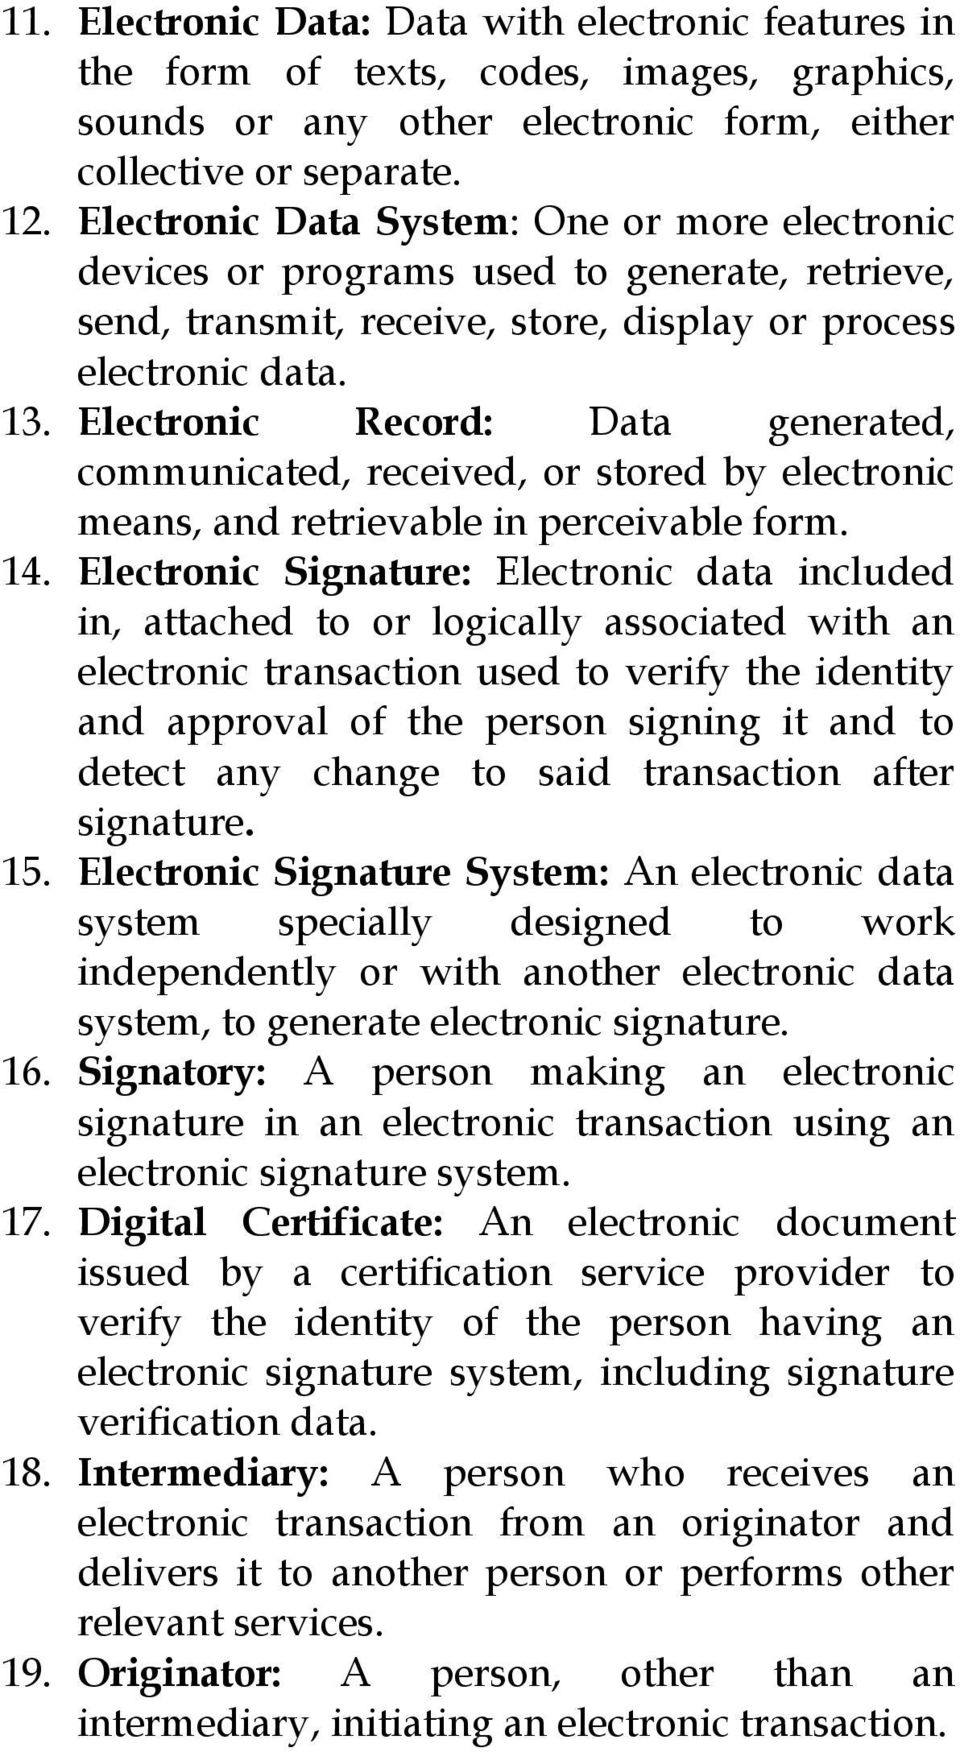 Electronic Record: Data generated, communicated, received, or stored by electronic means, and retrievable in perceivable form. 14.